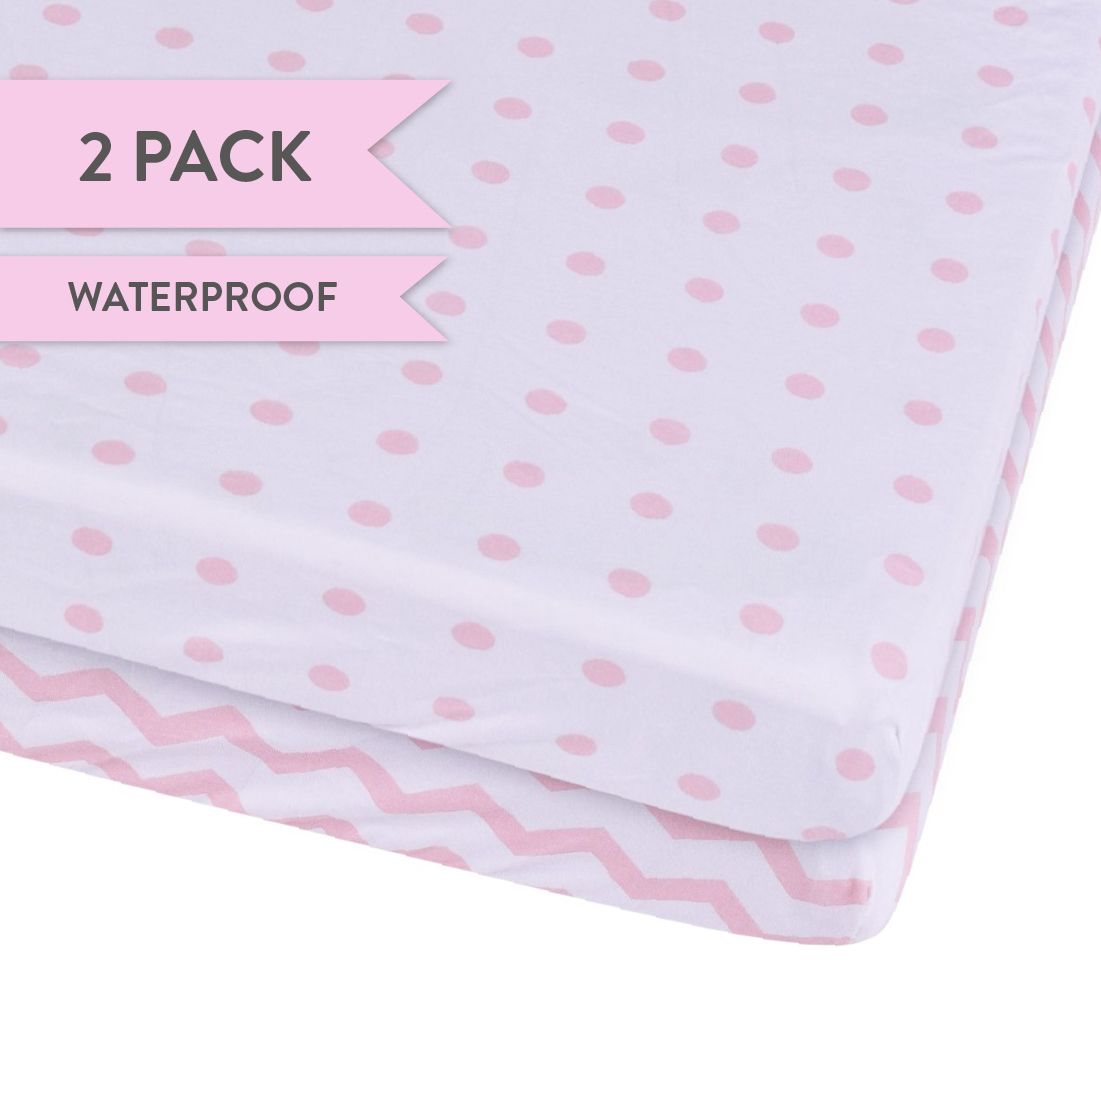 waterproof toddler bed fitted sheet pink